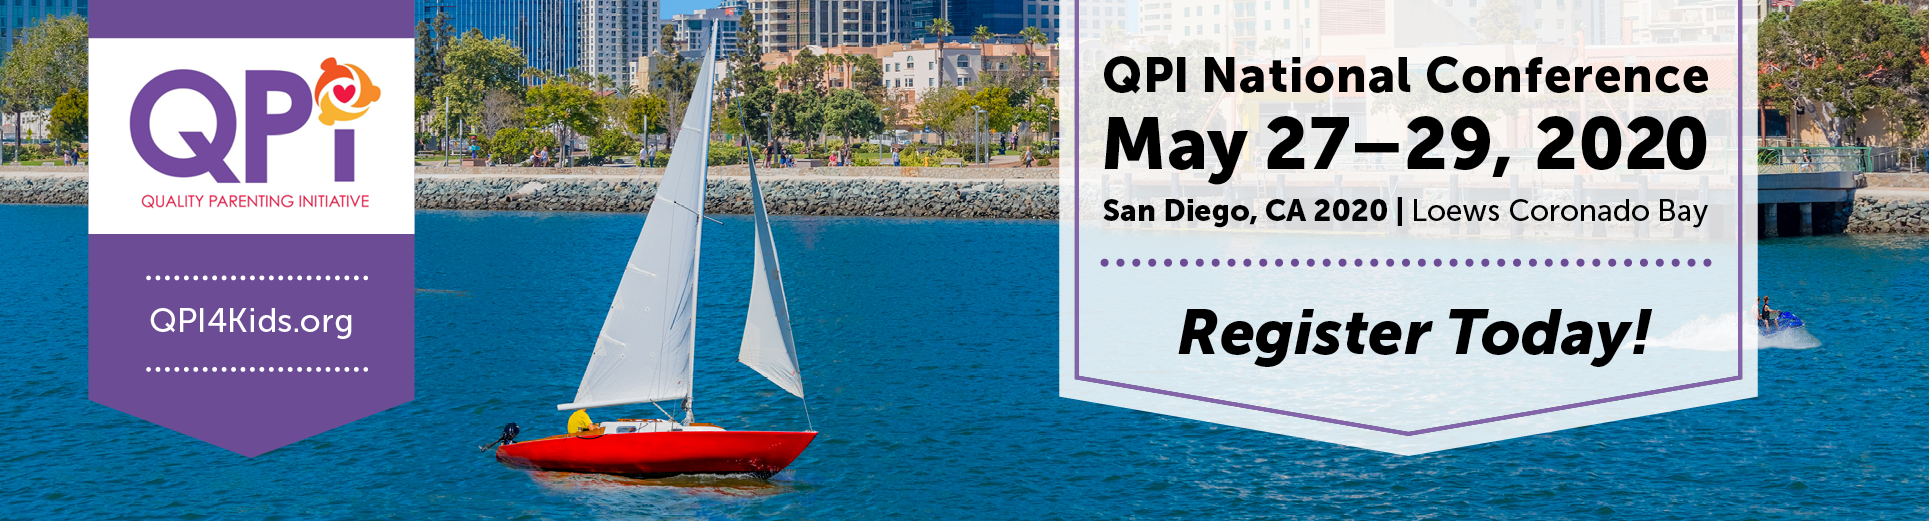 7th Annual QPI National Conference